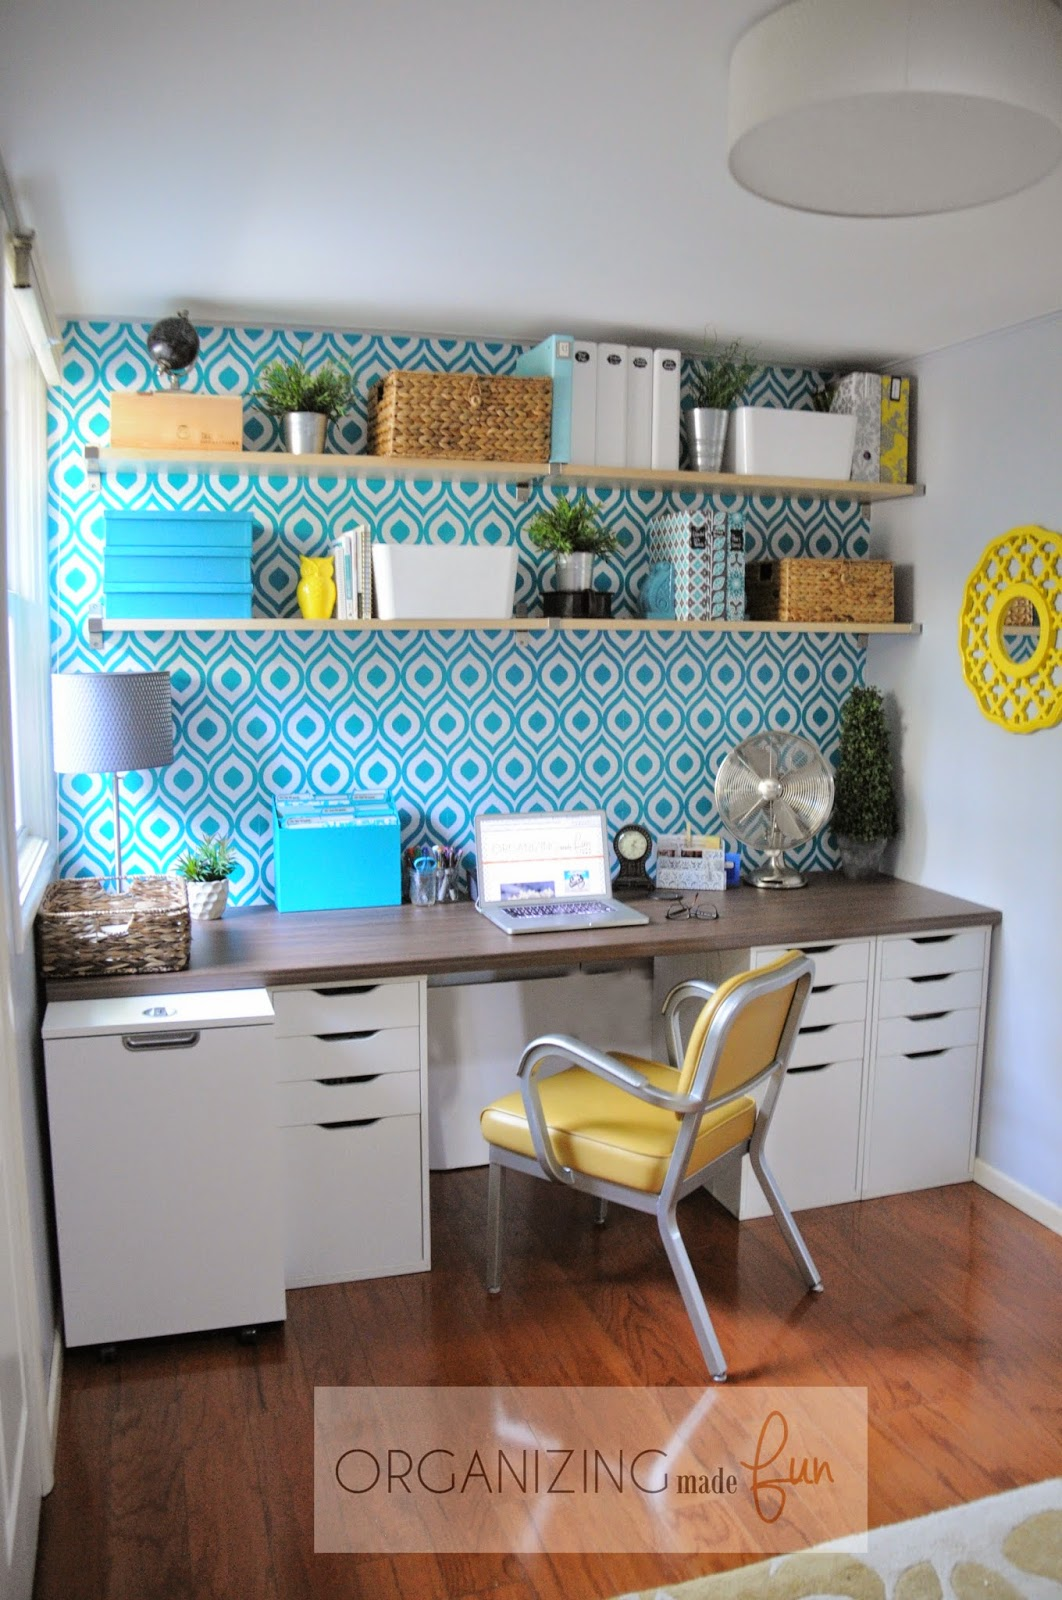 Home Office of Organizing Made Fun's home tour